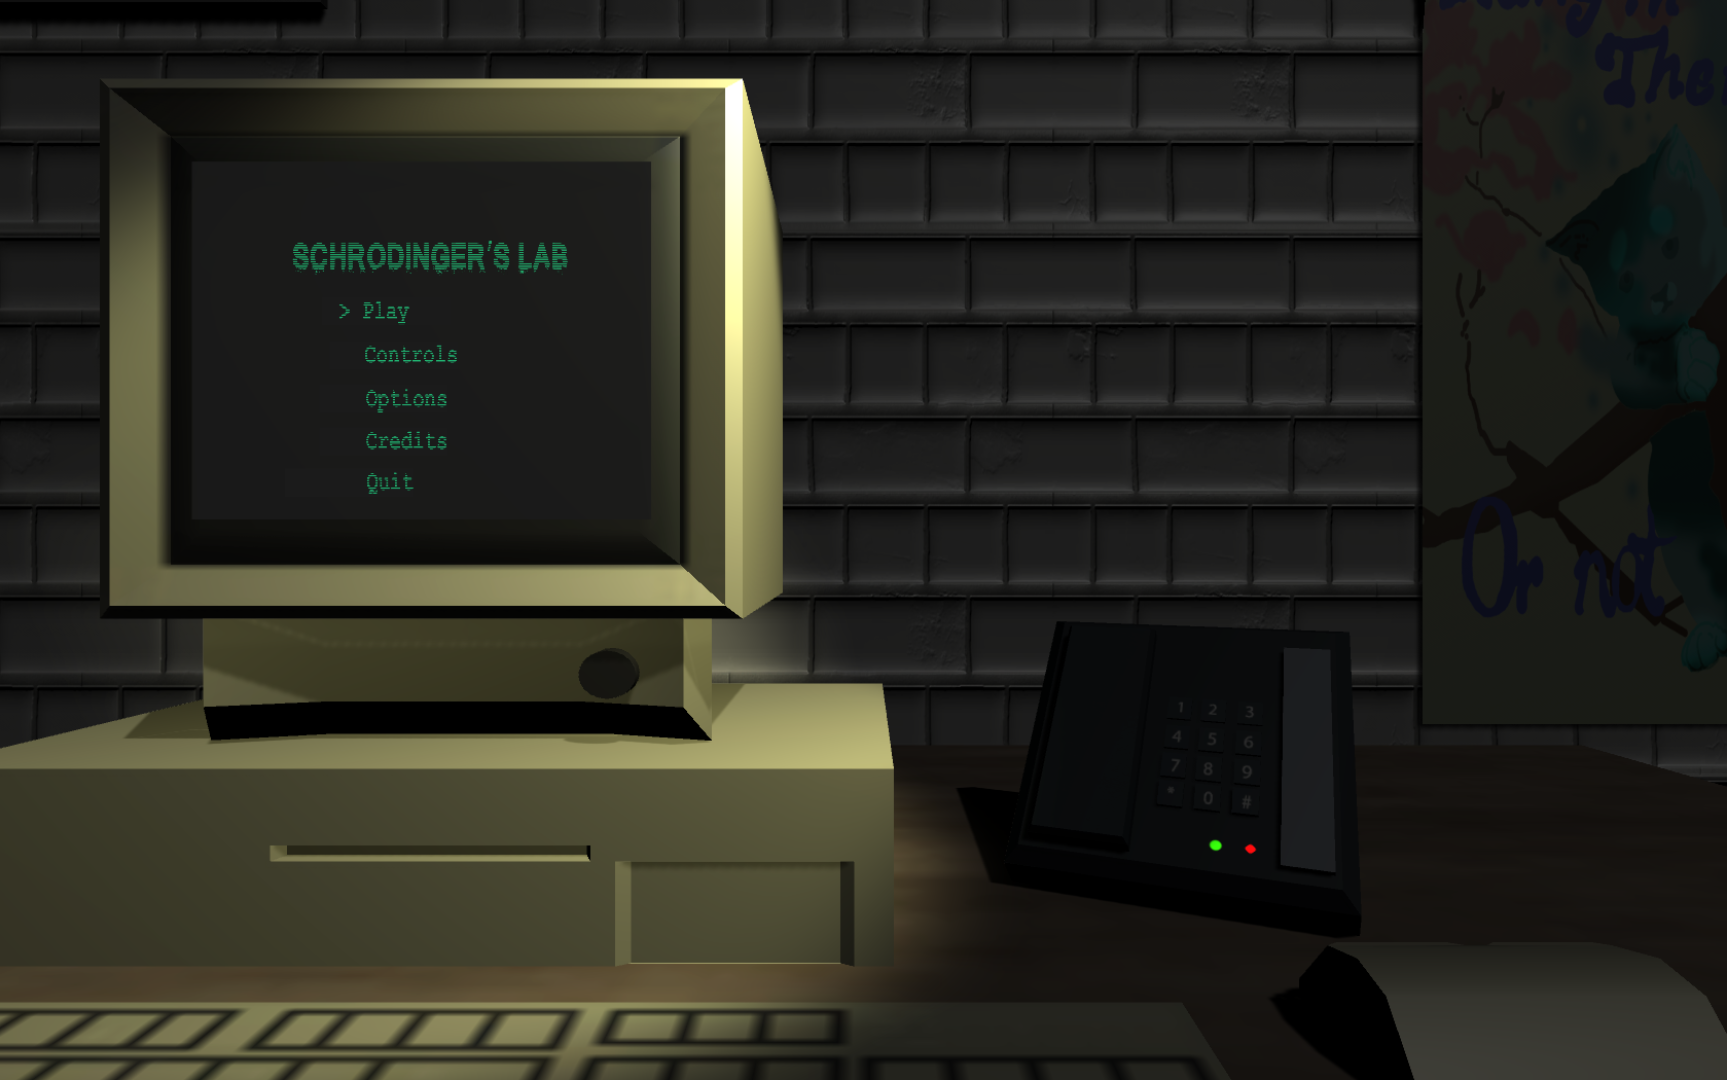 Screenshot from the main menus of Schrodinger's Lab